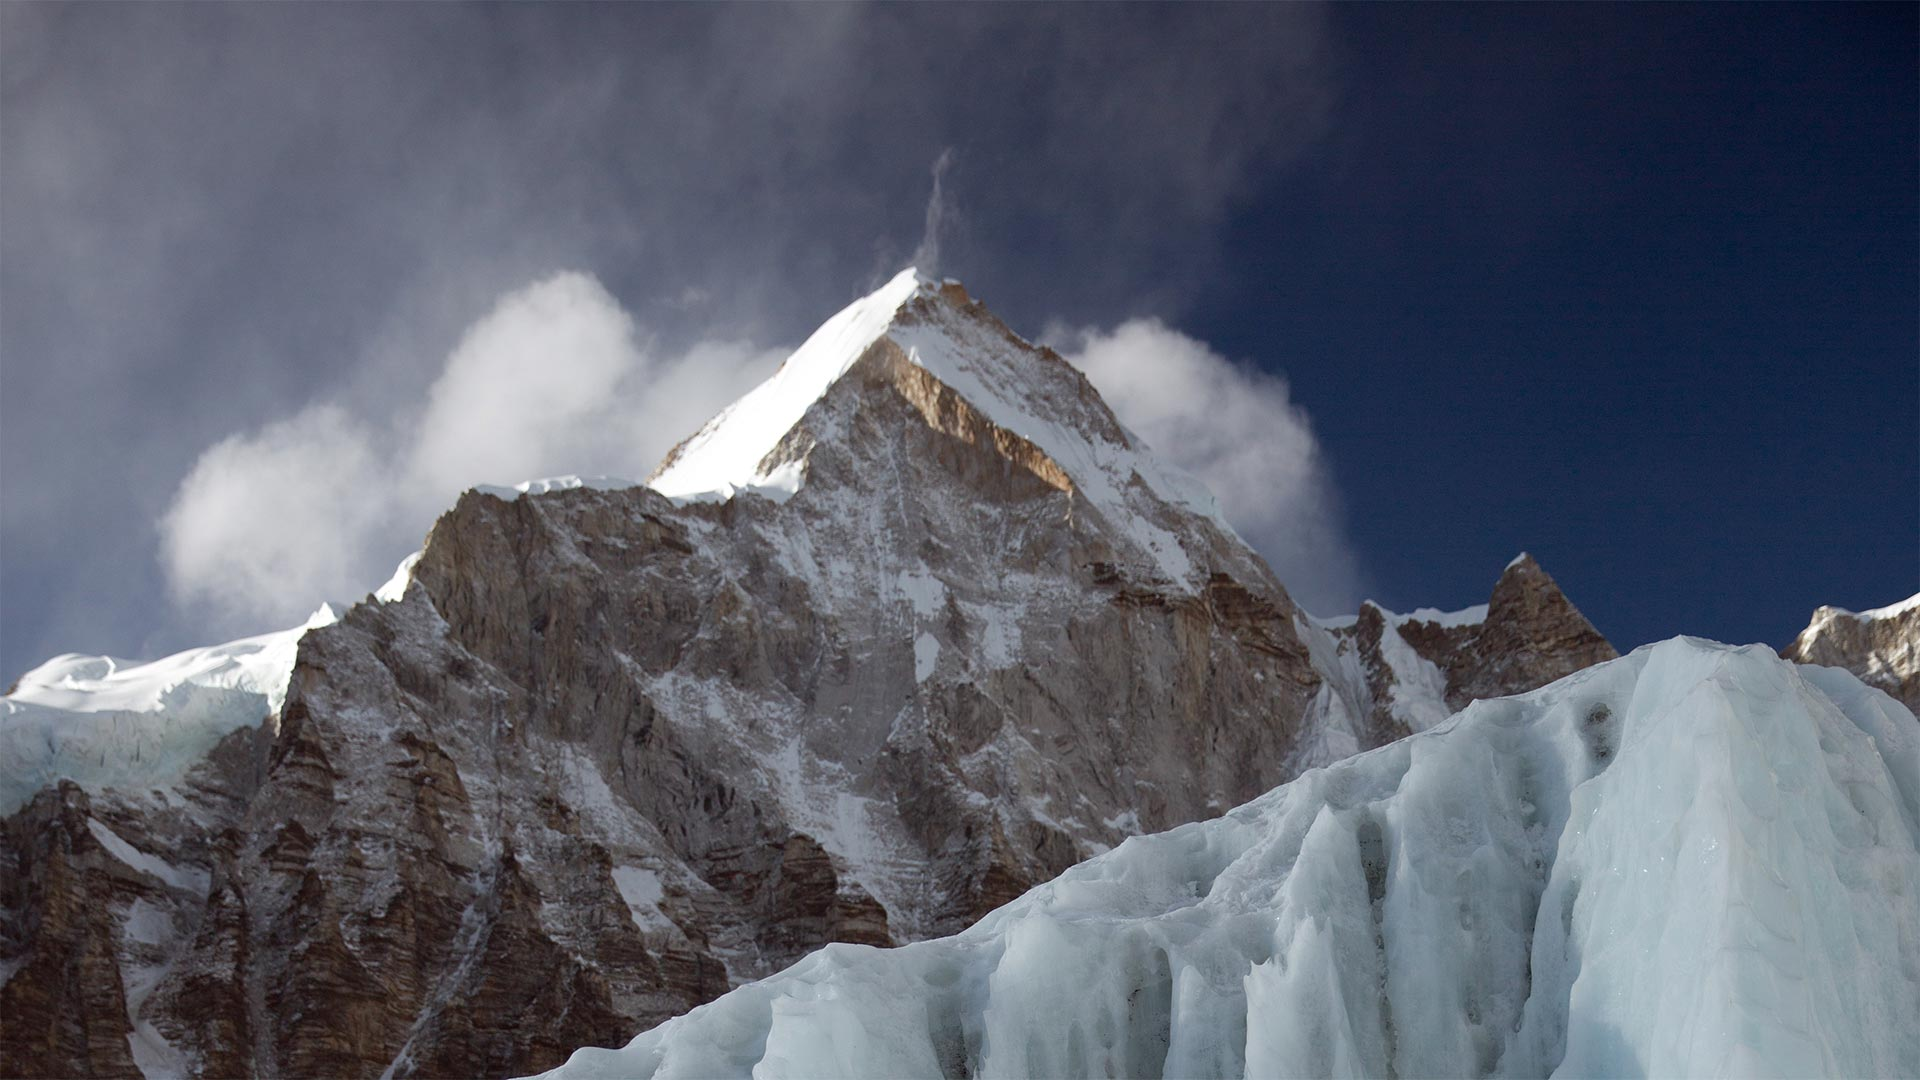 ICE AND MOUNT EVEREST